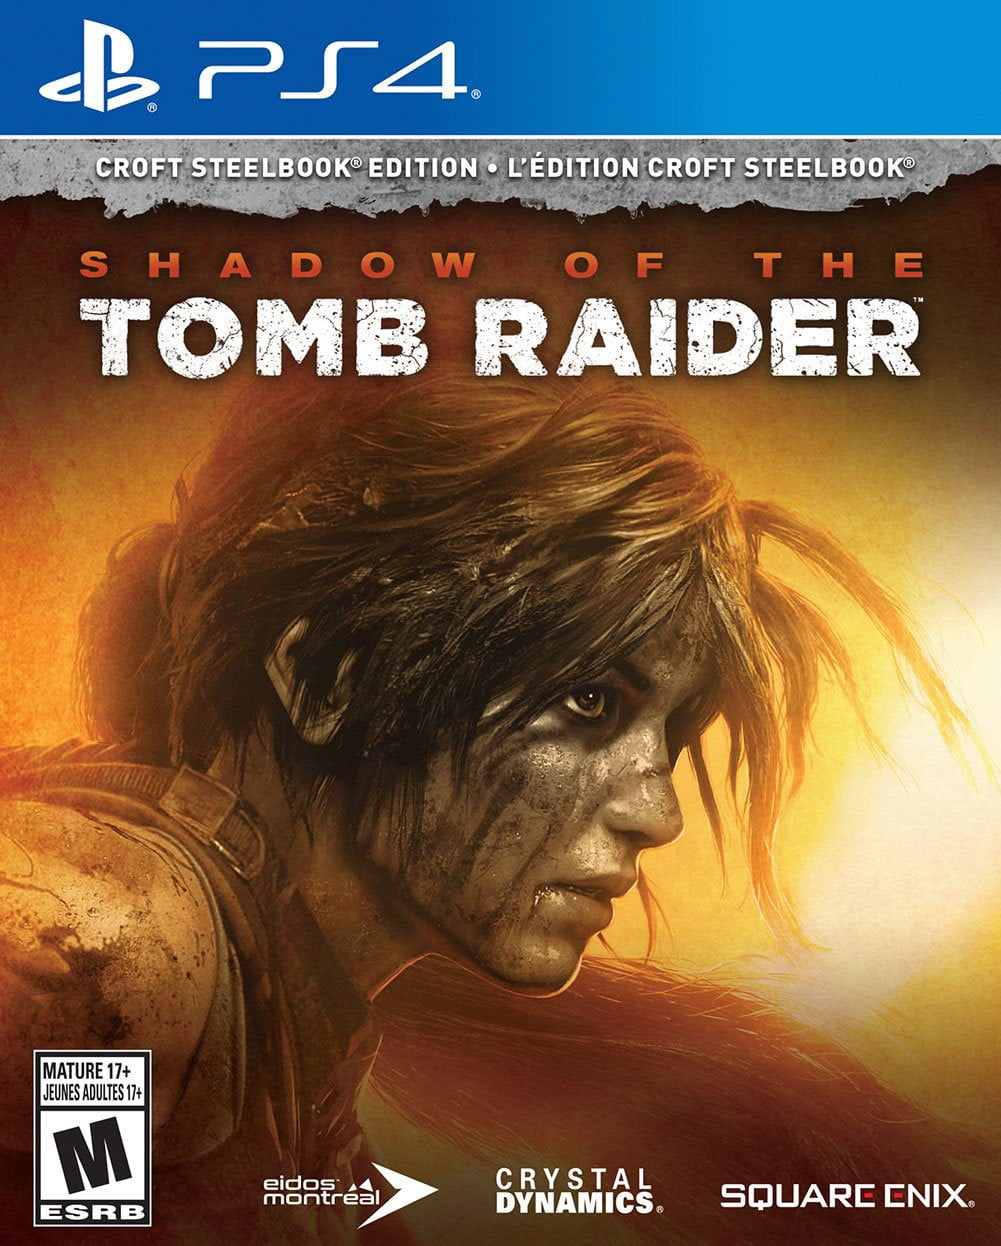 Shadow of the Tomb Raider - Croft Edition (PS4) PS4 Game - Shamy Stores